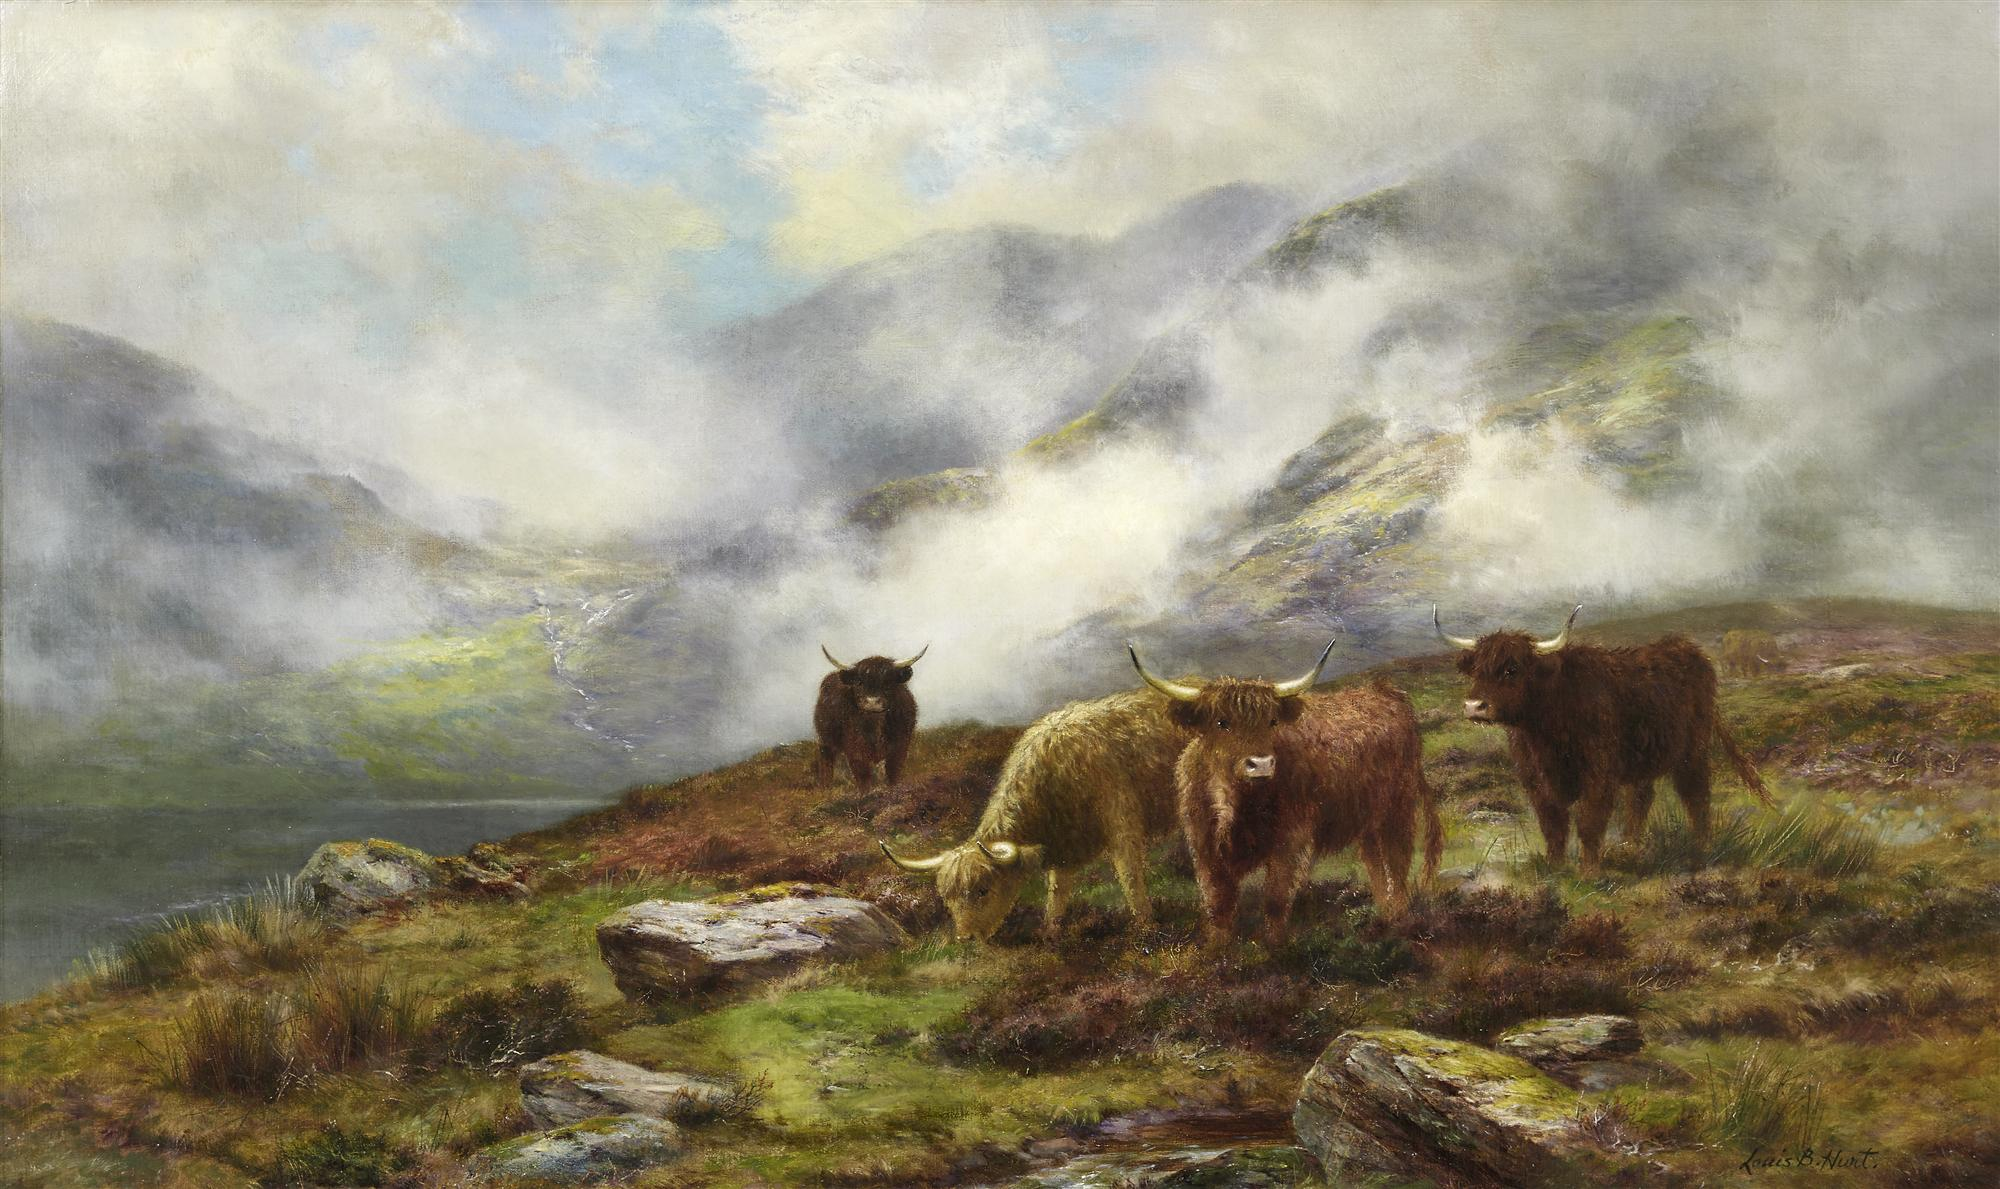 Louis Bosworth Hurt | The Eddying Mist that fills the Glen